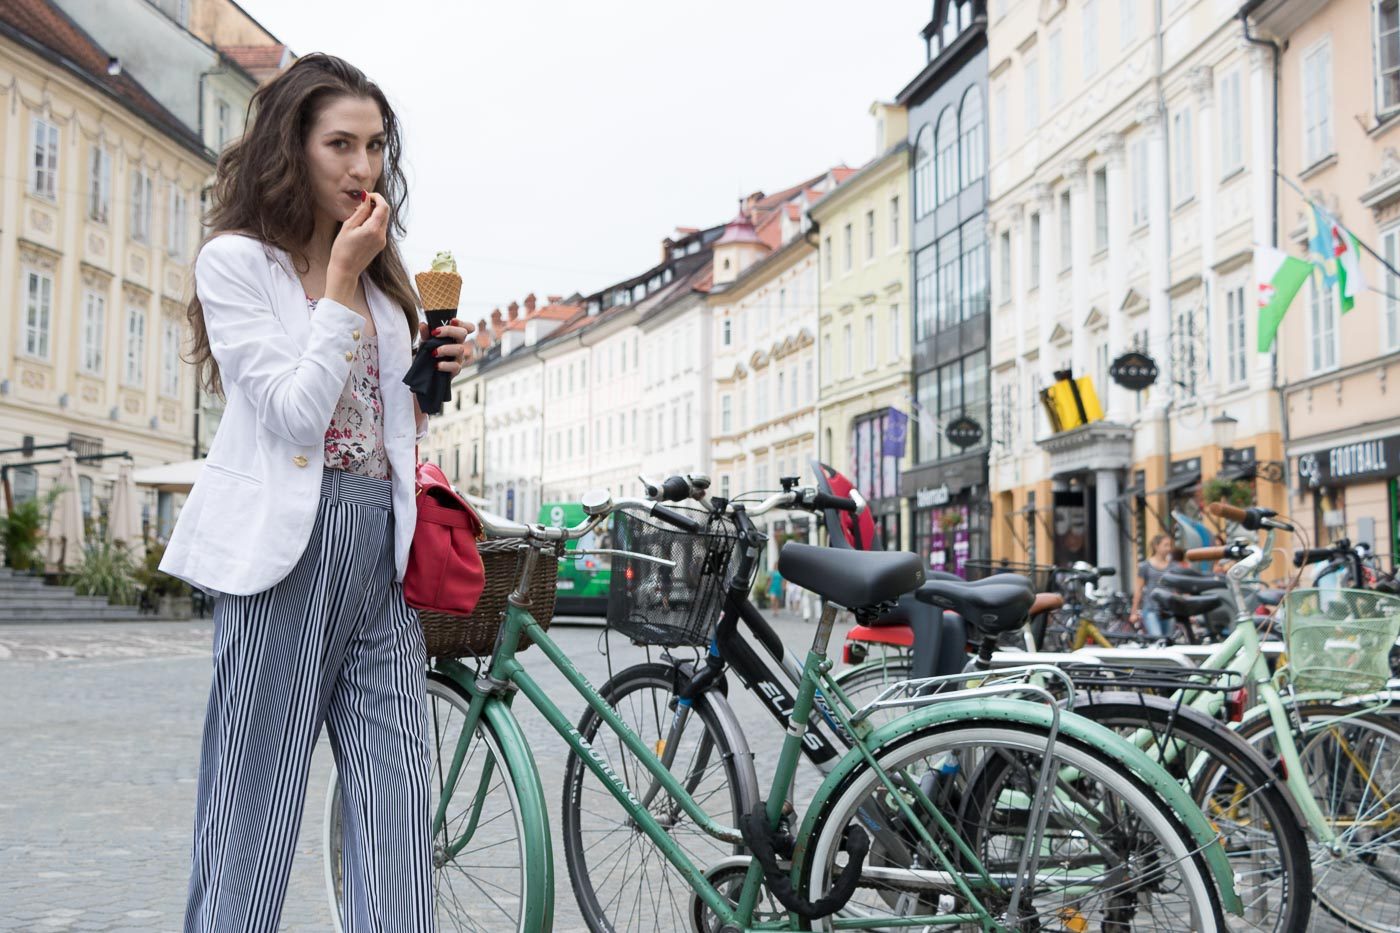 Fashion Blogger Veronika Lipar of Brunette from Wall Street eating pistachio ice cream on the street wearing wide-leg Michael Kors trousers with stripes, white blazer, floral slip top from Stella McCartney and blue Aquazzura sandals